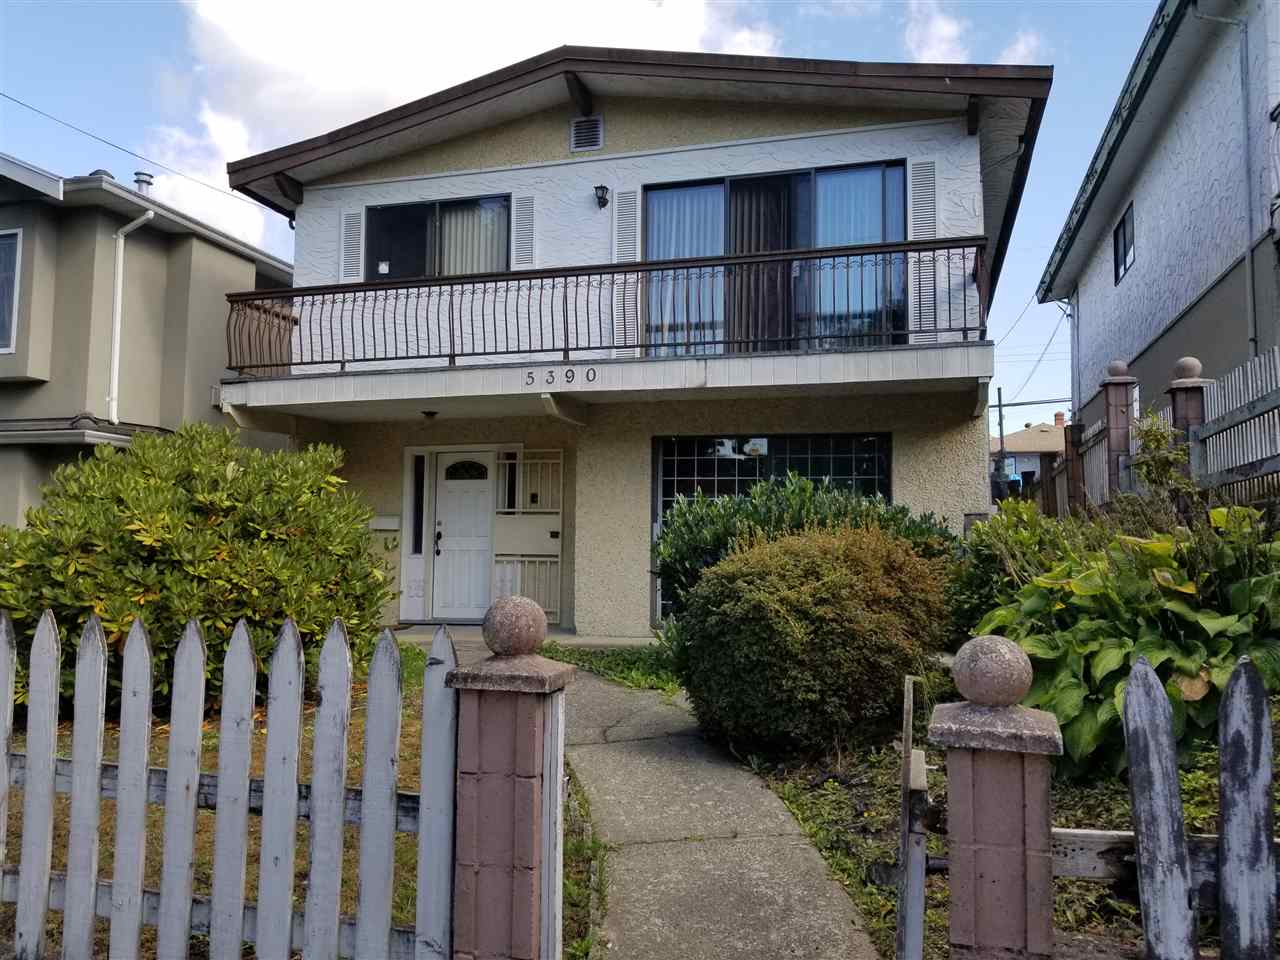 Joyce Collingwood Area. Land Assembly opportunity RM-9BN. Potential to build 4 storey with FSR - 2. Vancouver special. 3 bdrms, 1 + 1/2 bath on upstairs. Below offers lots of accommodation.